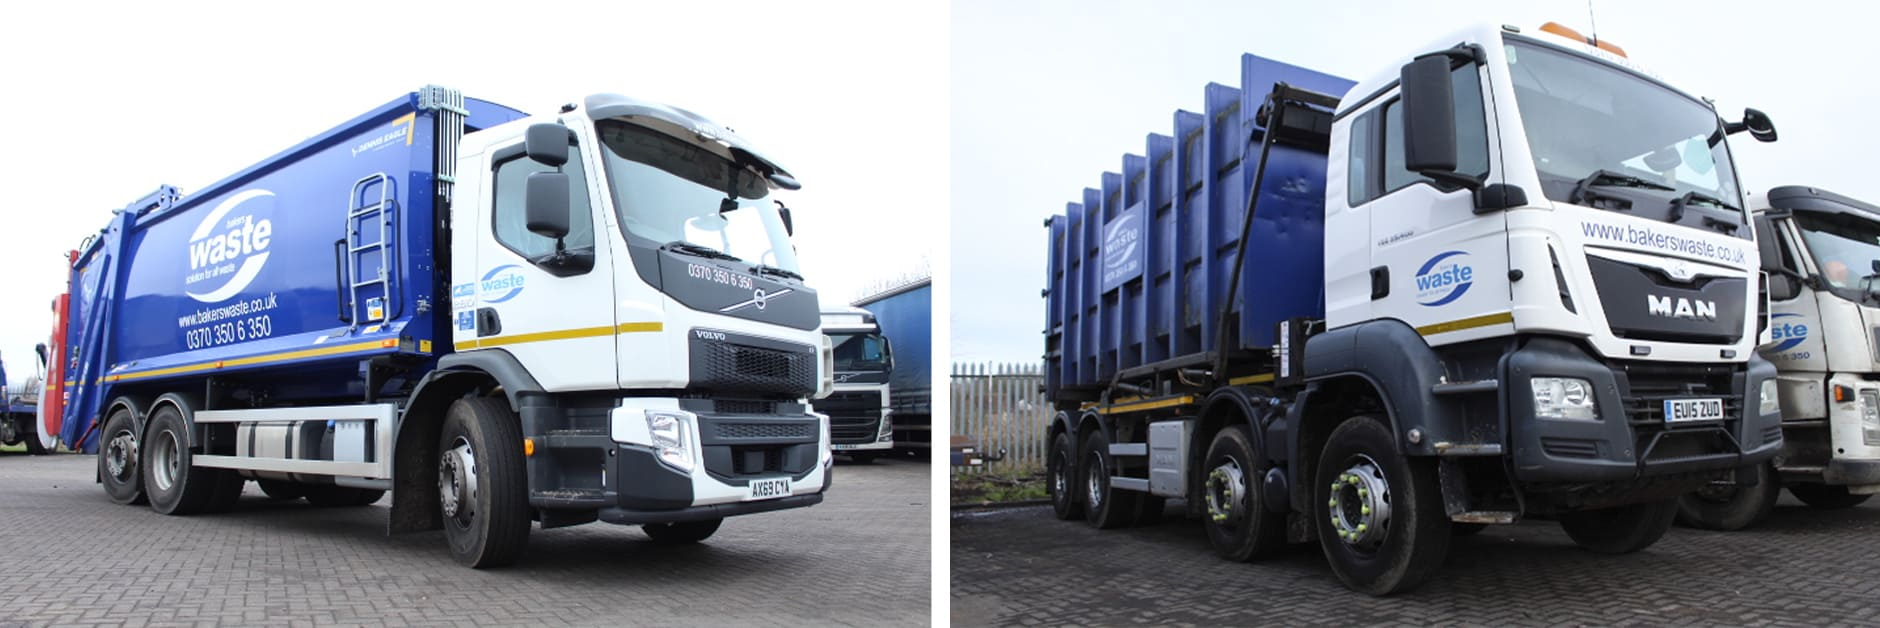 Two New Trucks 2020 - Investment